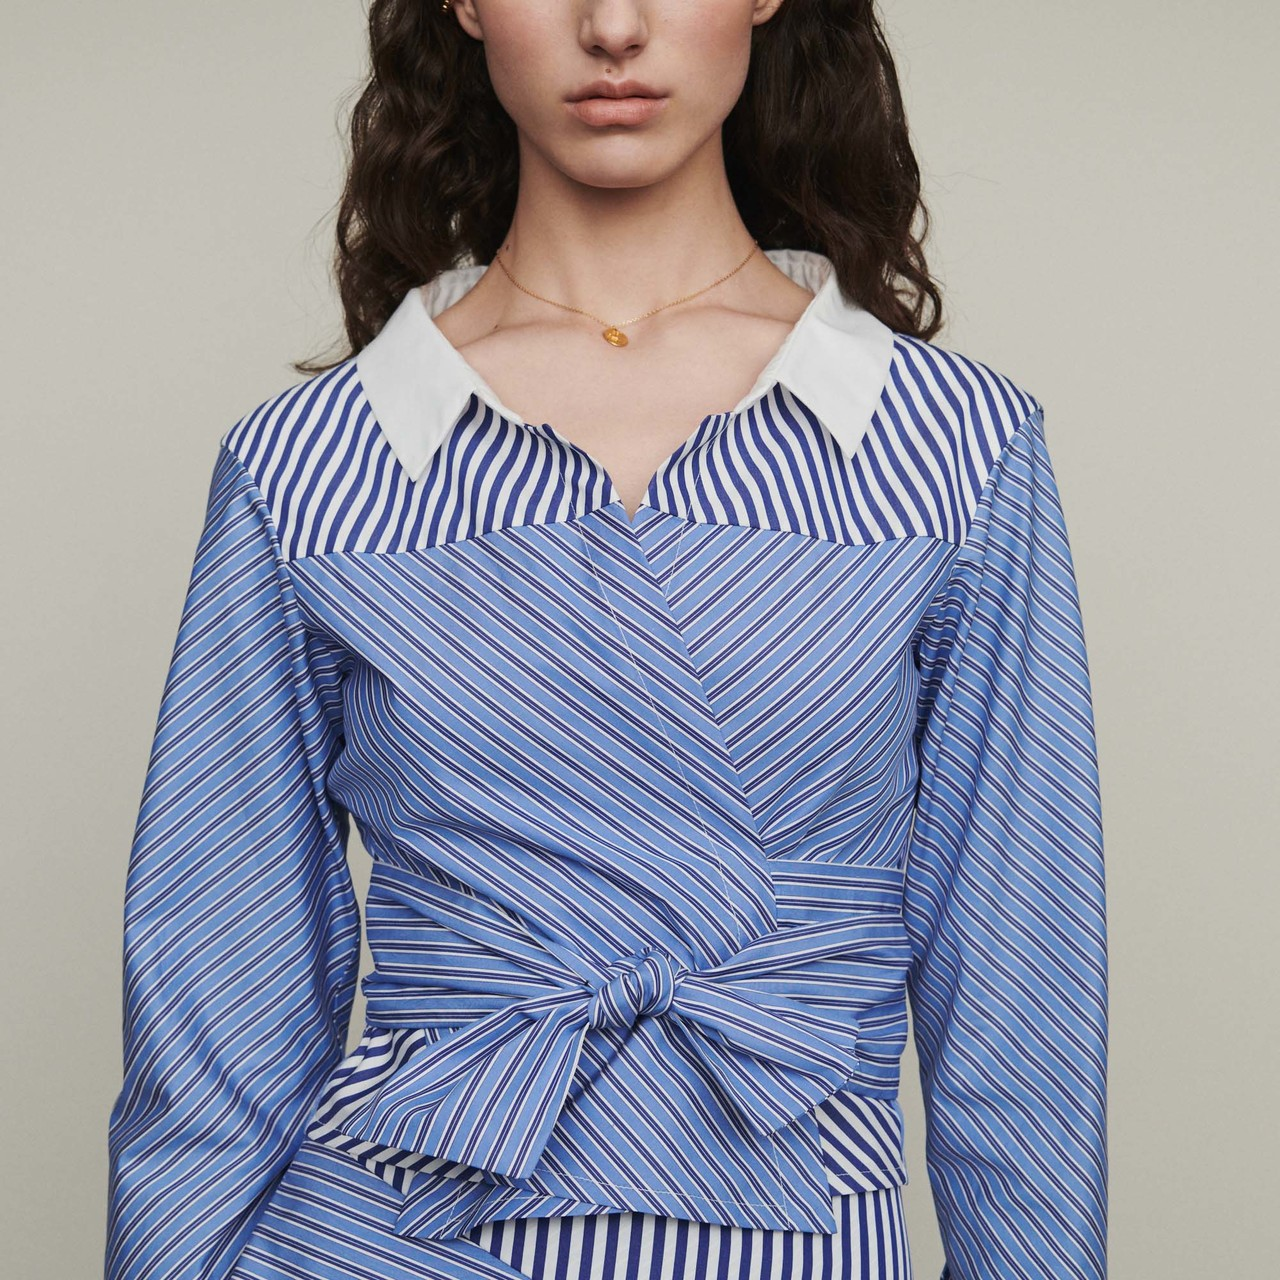 Cropped shirt-style top with tie - Stripe